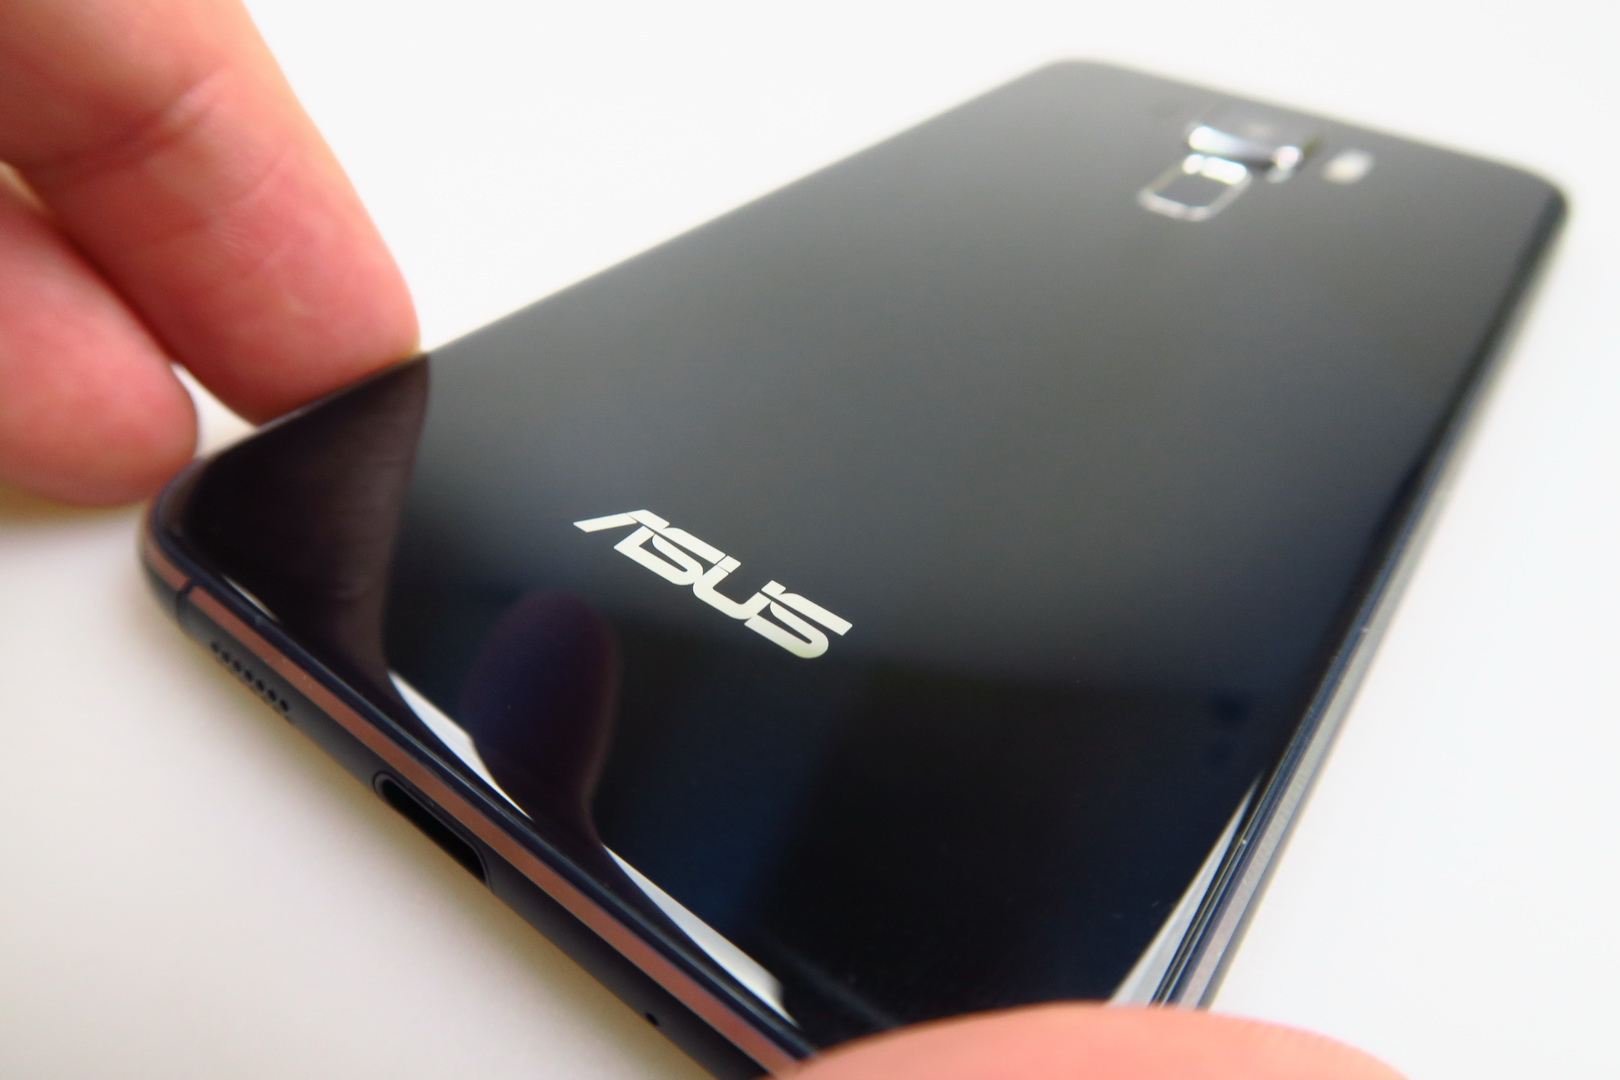 asus zenfone 3 ze520kl review improved design camera and basically everything from zenfone 2. Black Bedroom Furniture Sets. Home Design Ideas